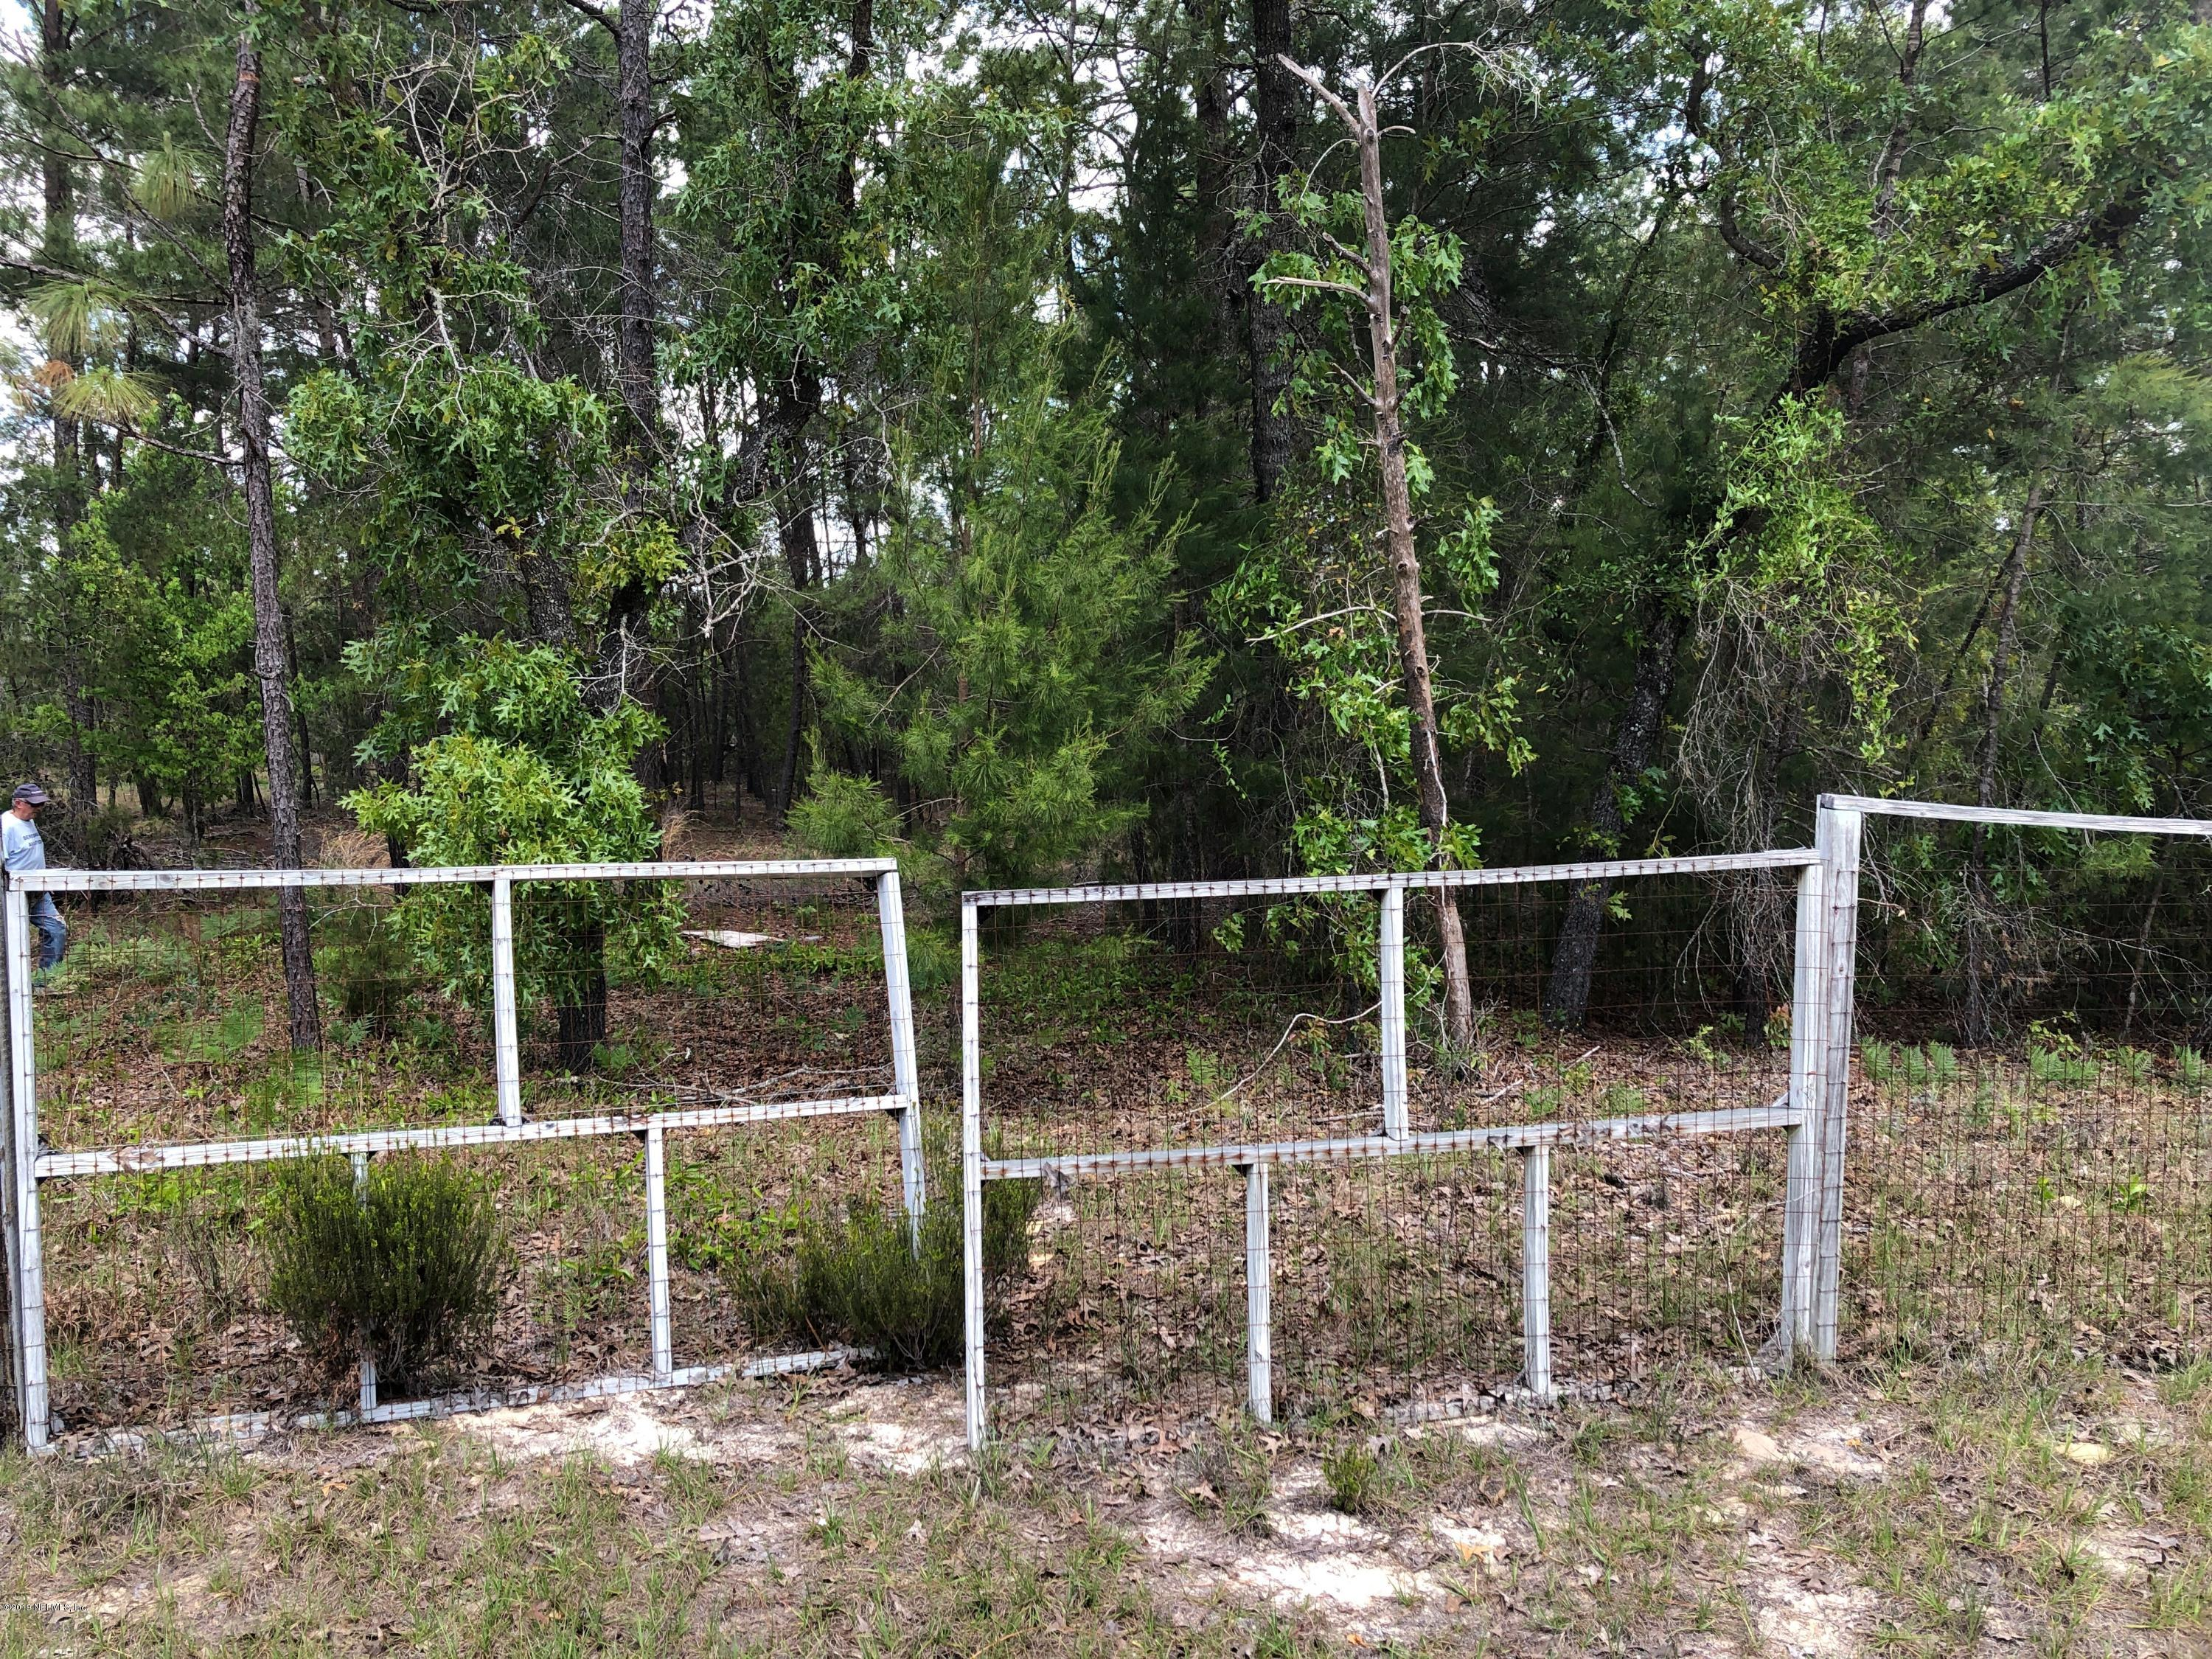 000 HILL TOP, HAWTHORNE, FLORIDA 32640, ,Vacant land,For sale,HILL TOP,989742